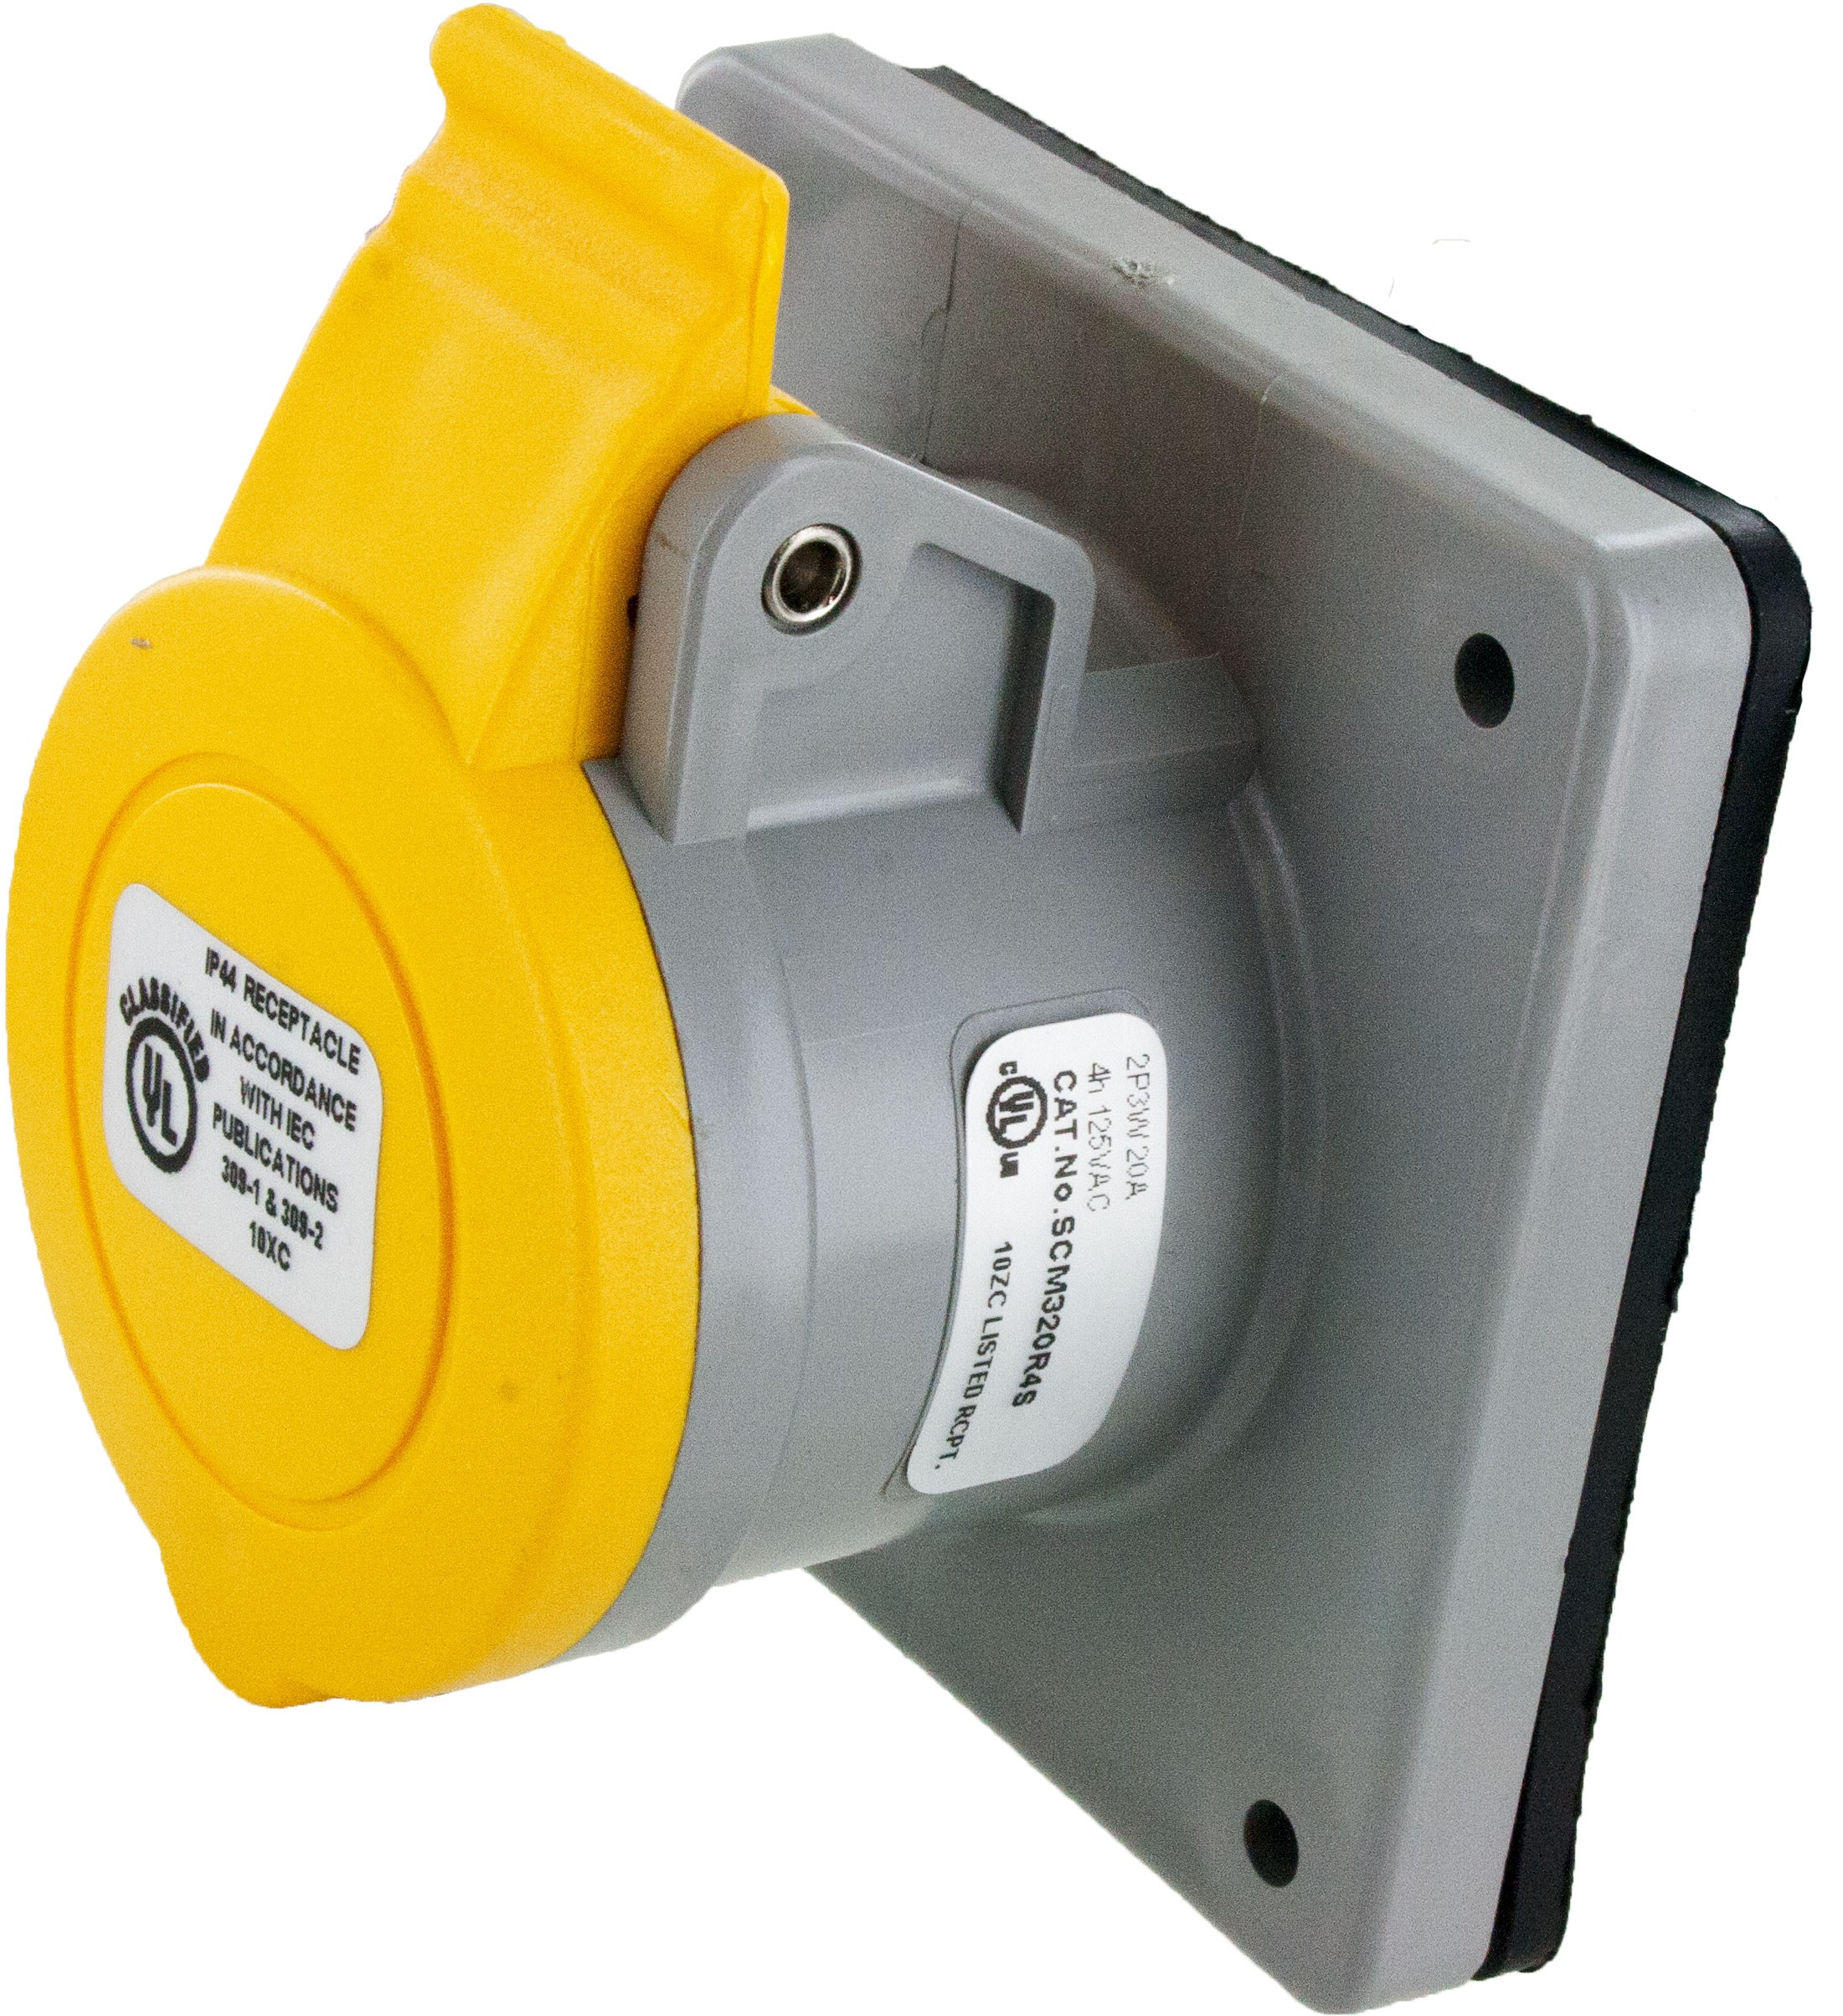 320R4S Pin And Sleeve Receptacle 20 Amp 2 Pole 3 Wire | ElecDirect